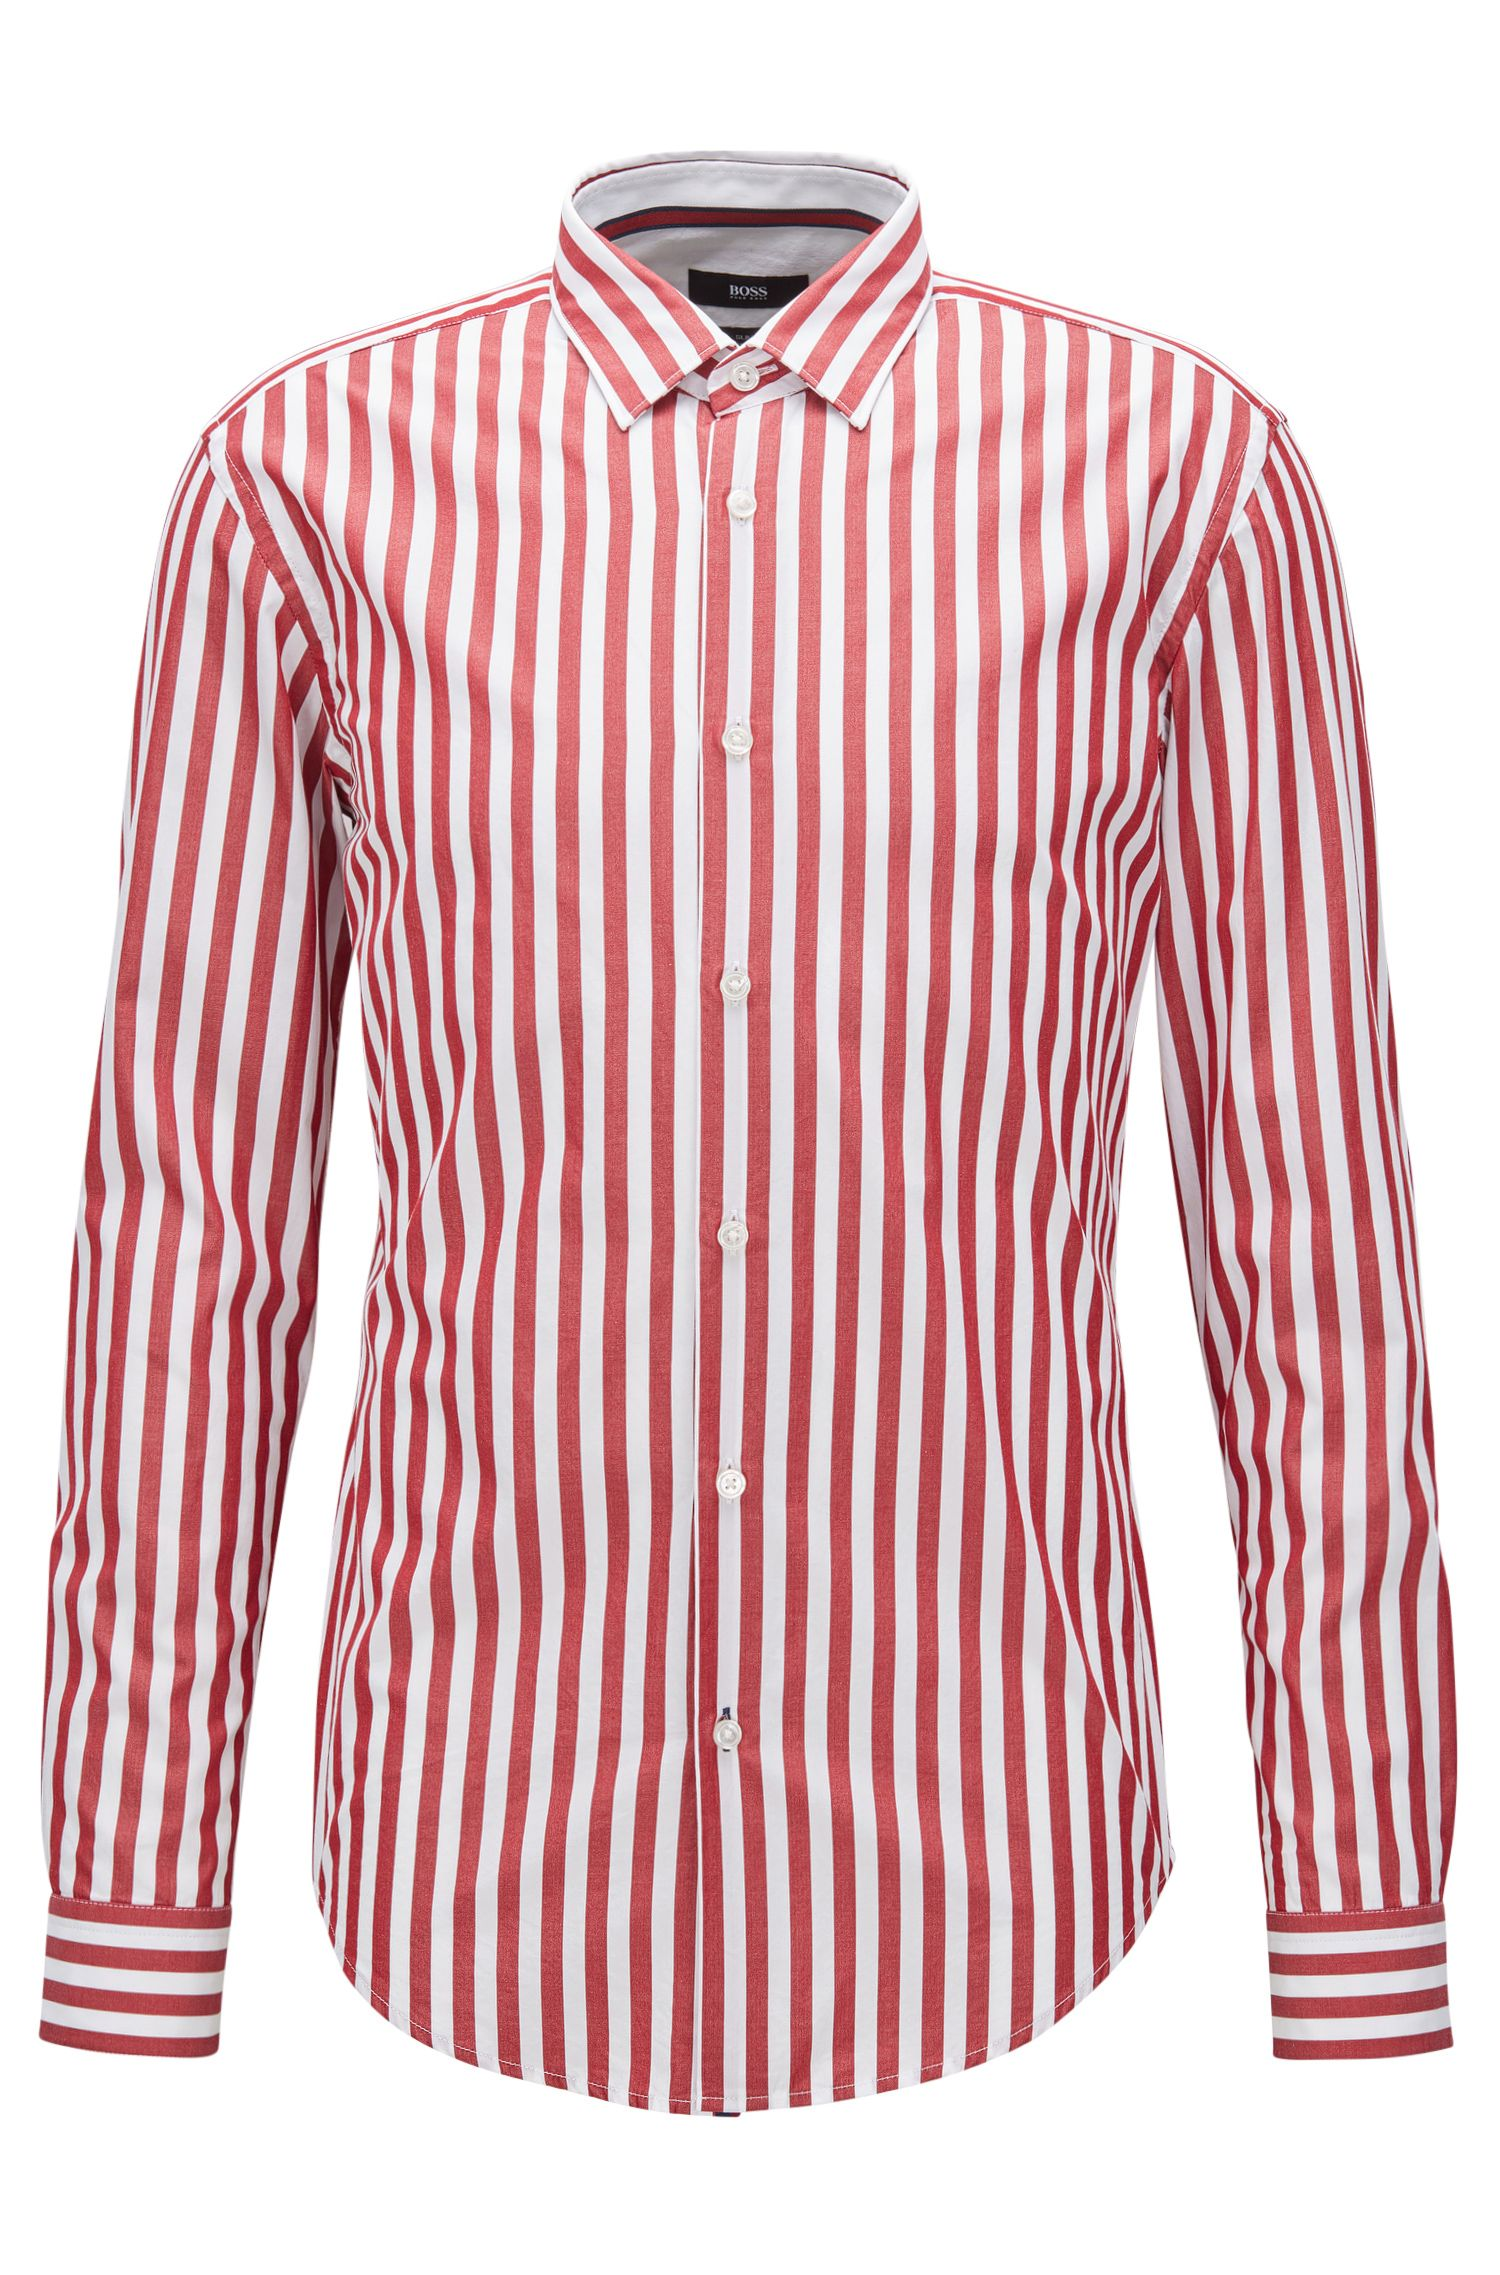 Cotton Button Down Shirt, Slim Fit | Ronni, Red